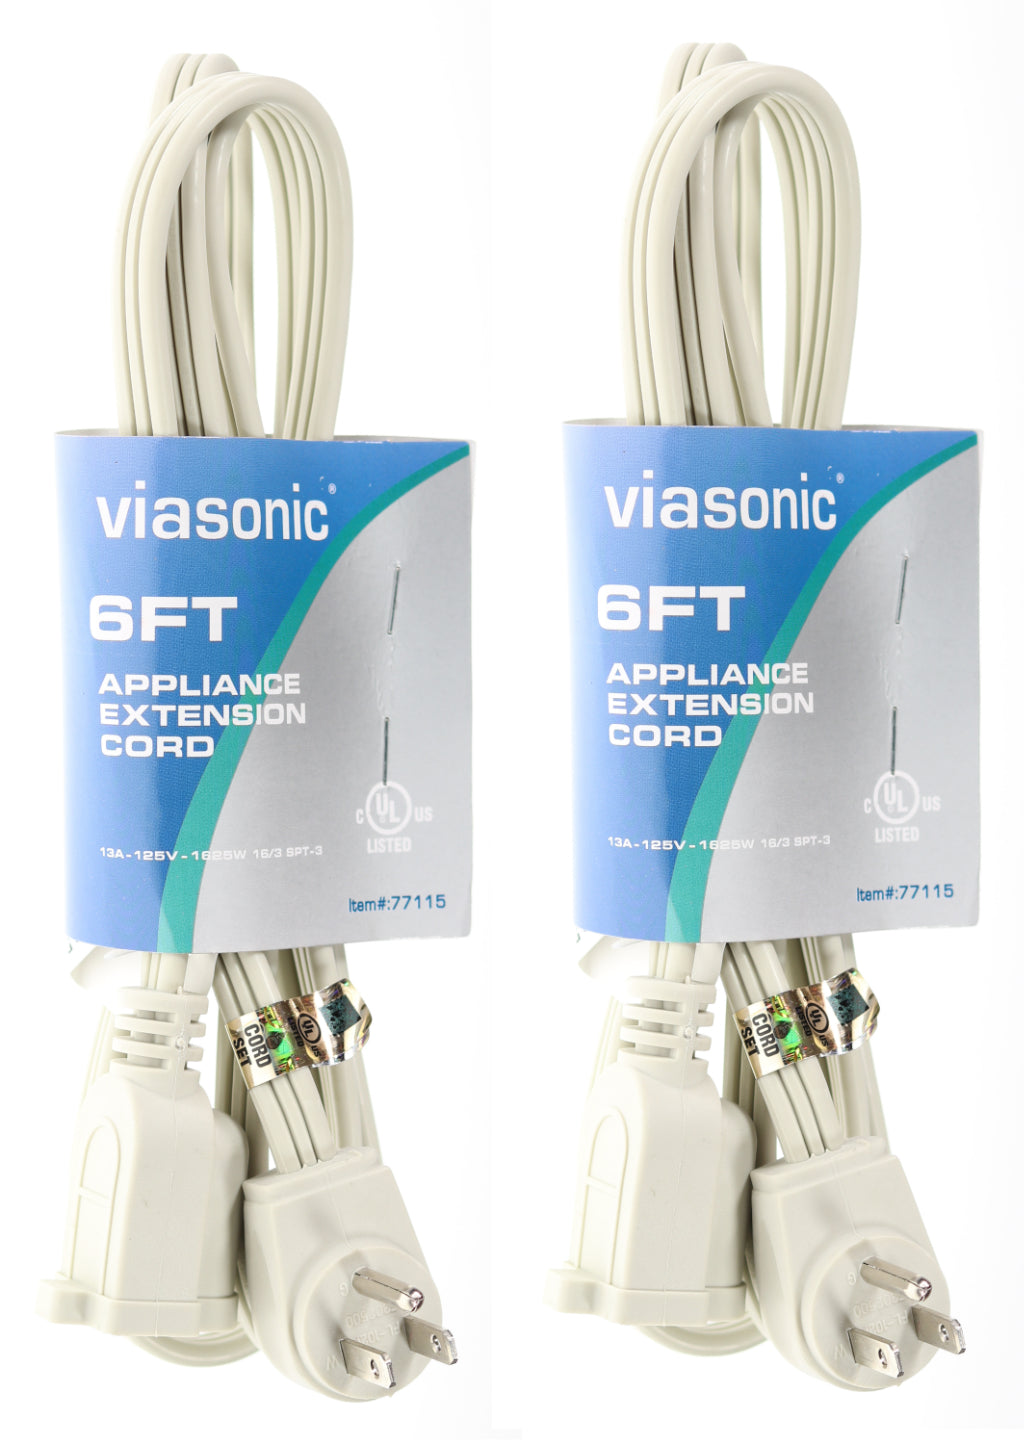 Viasonic Appliance Extension Cord - 2-Pack - 16 Gauge - 3 Prong - UL-Listed